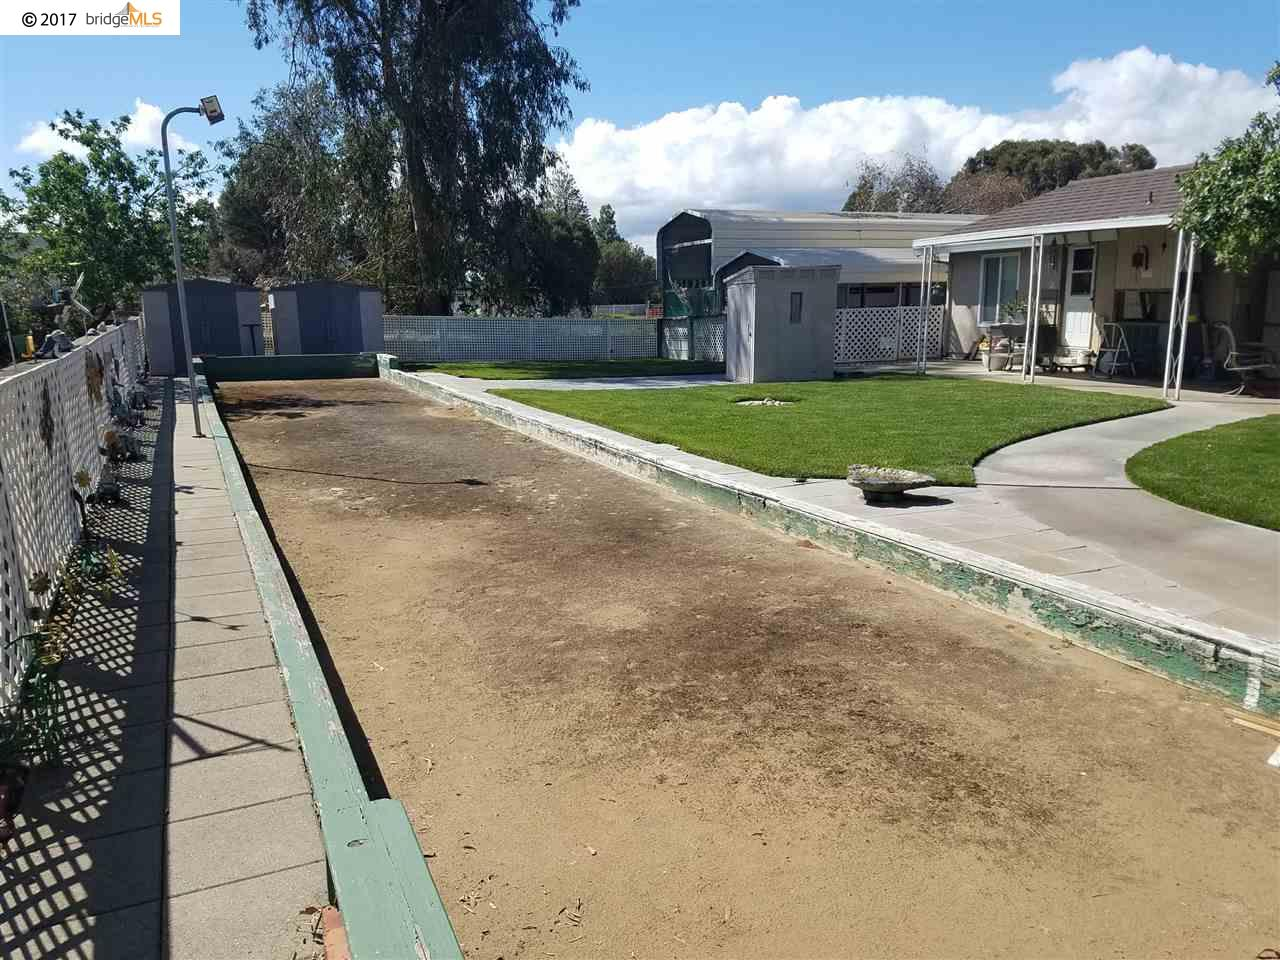 Additional photo for property listing at 59-67 Old Stagecoach Road 59-67 Old Stagecoach Road Brentwood, California 94513 Estados Unidos